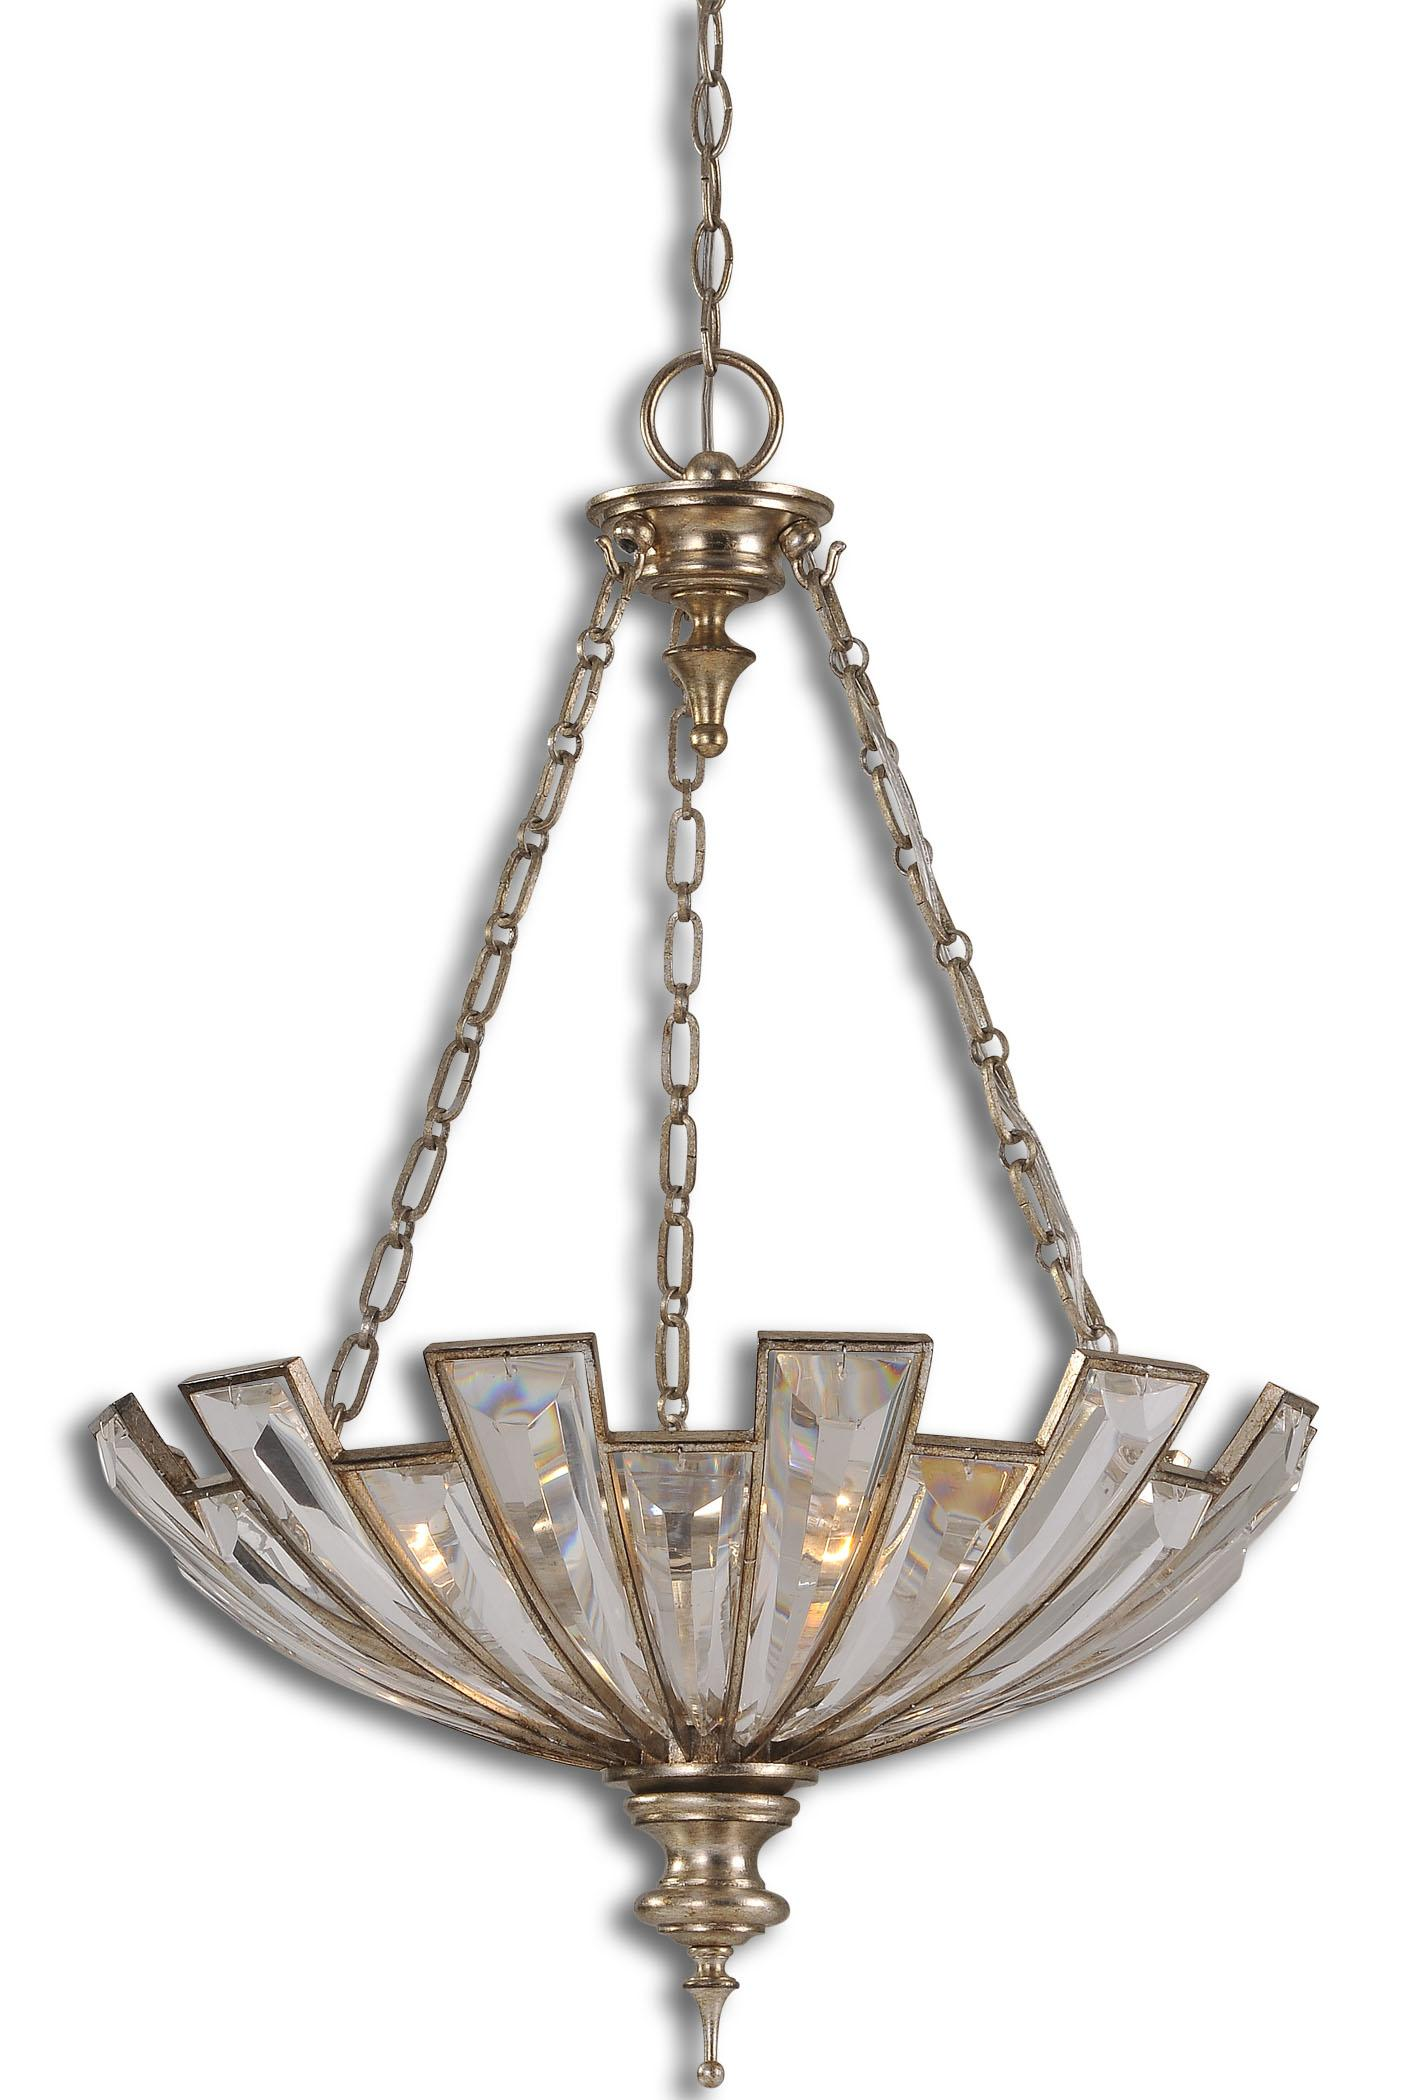 Uttermost Lighting Fixtures Vicentina 3 Light Pendant - Item Number: 21989